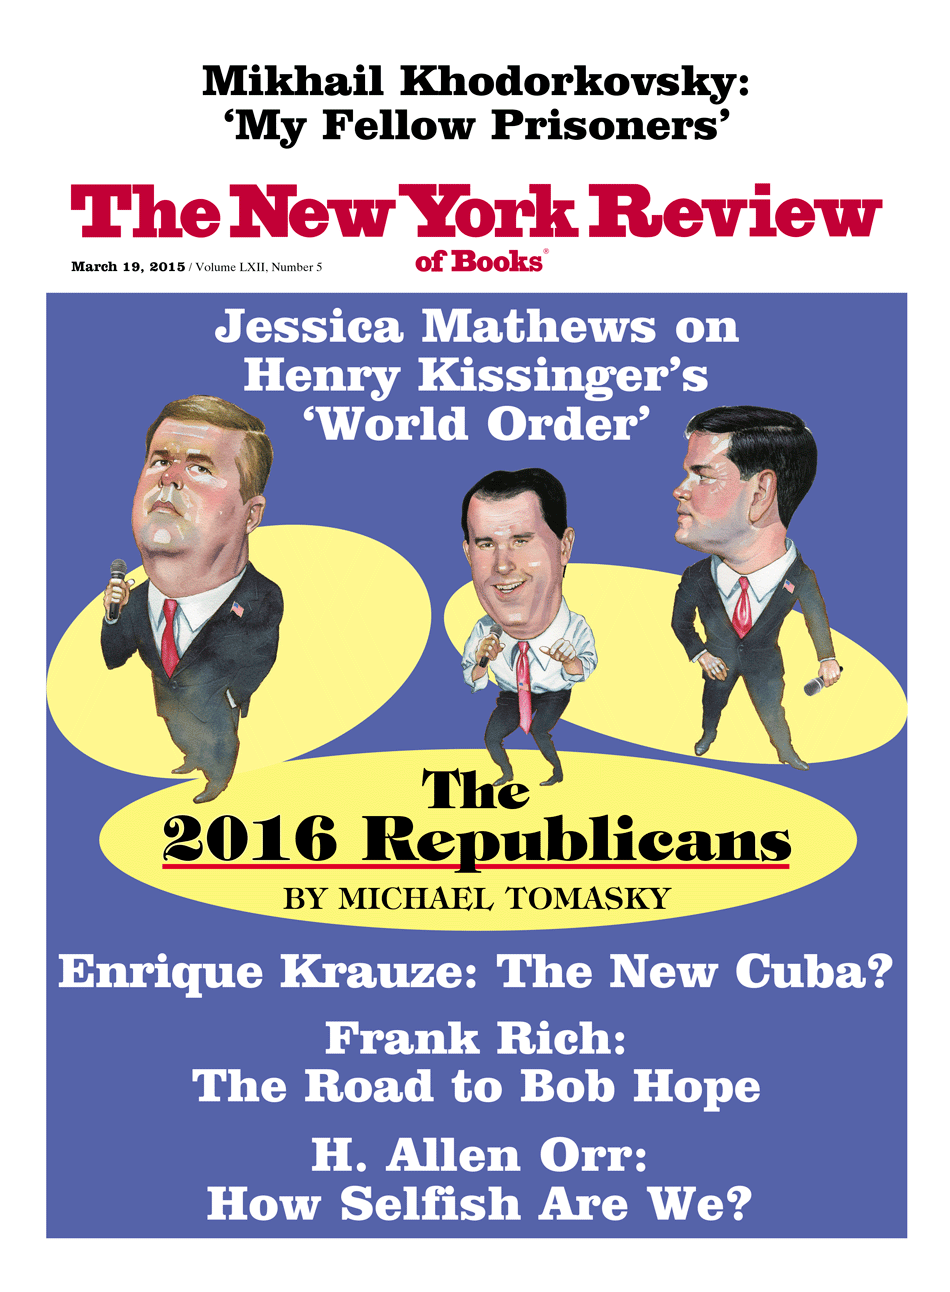 Image of the March 19, 2015 issue cover.